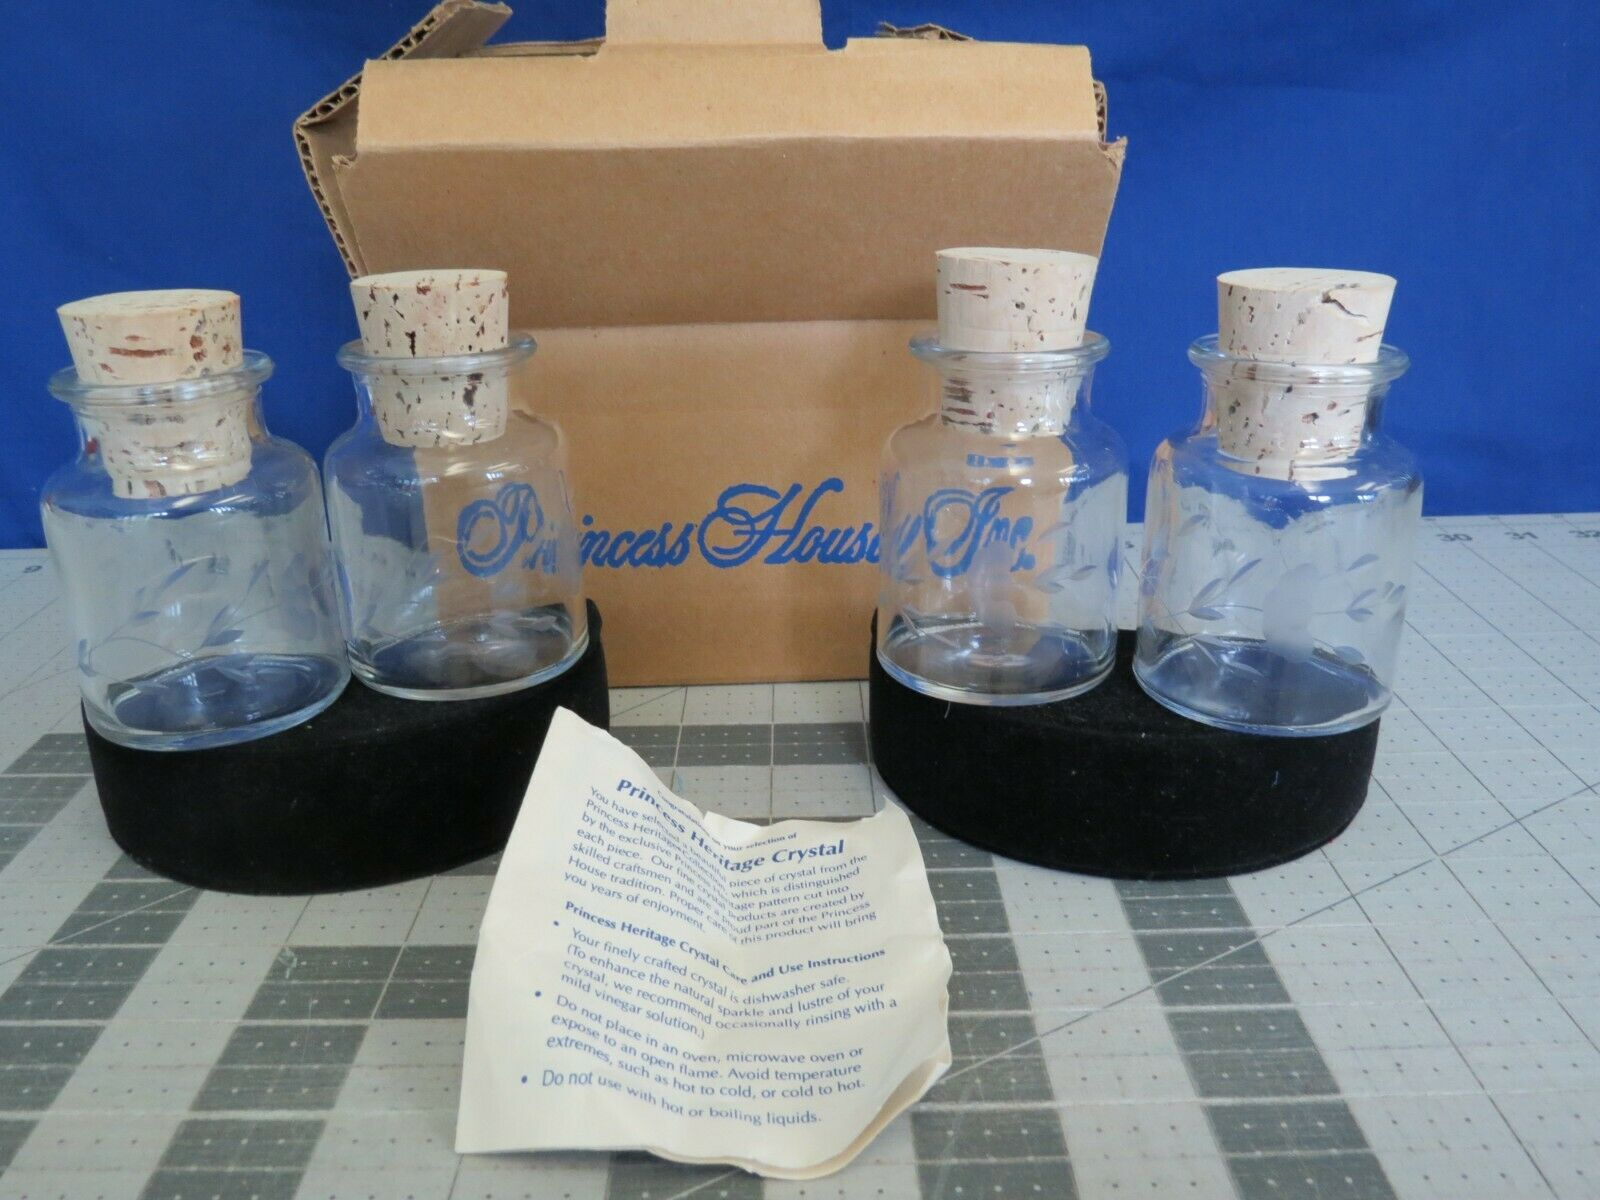 Princess House Crystal Heritage Spice Jar W/ Cork Lot Of 4 In Box - $4.99